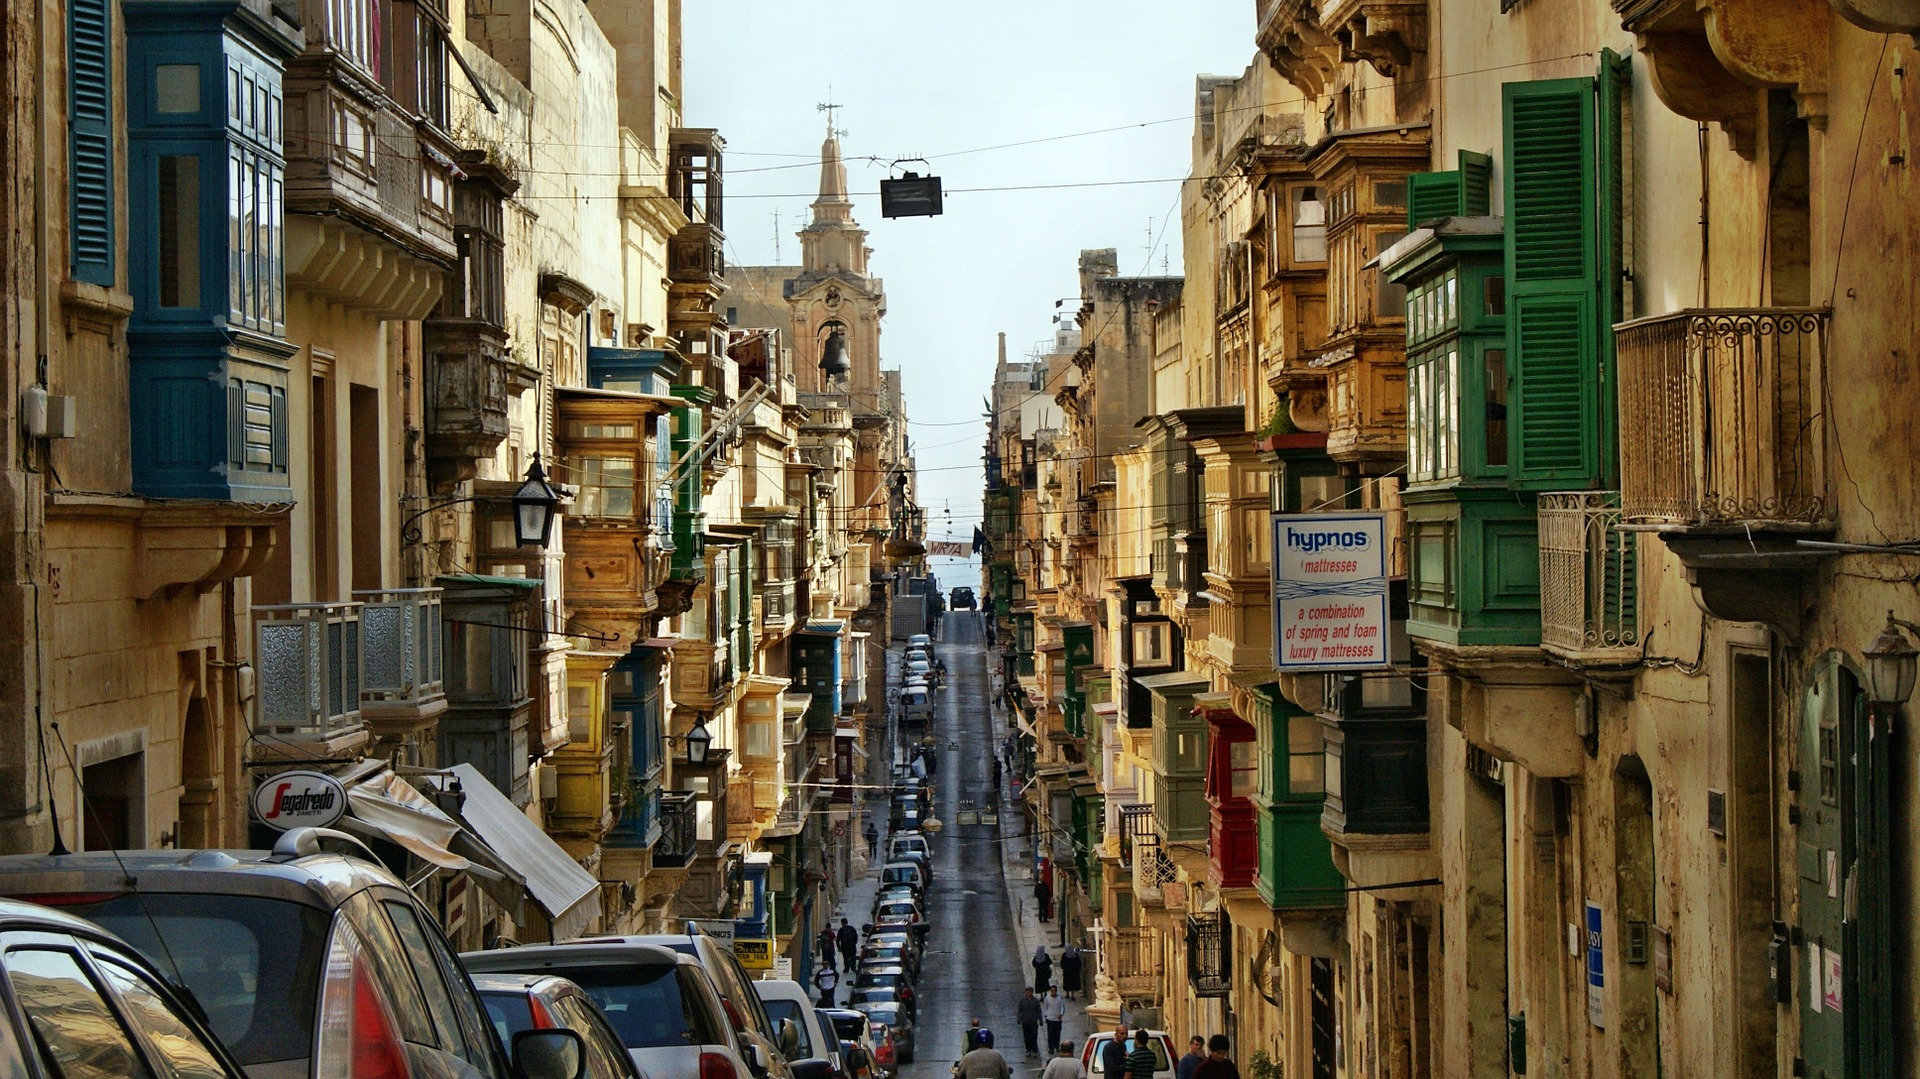 The Top 7 Things To Do And See In Valletta Malta